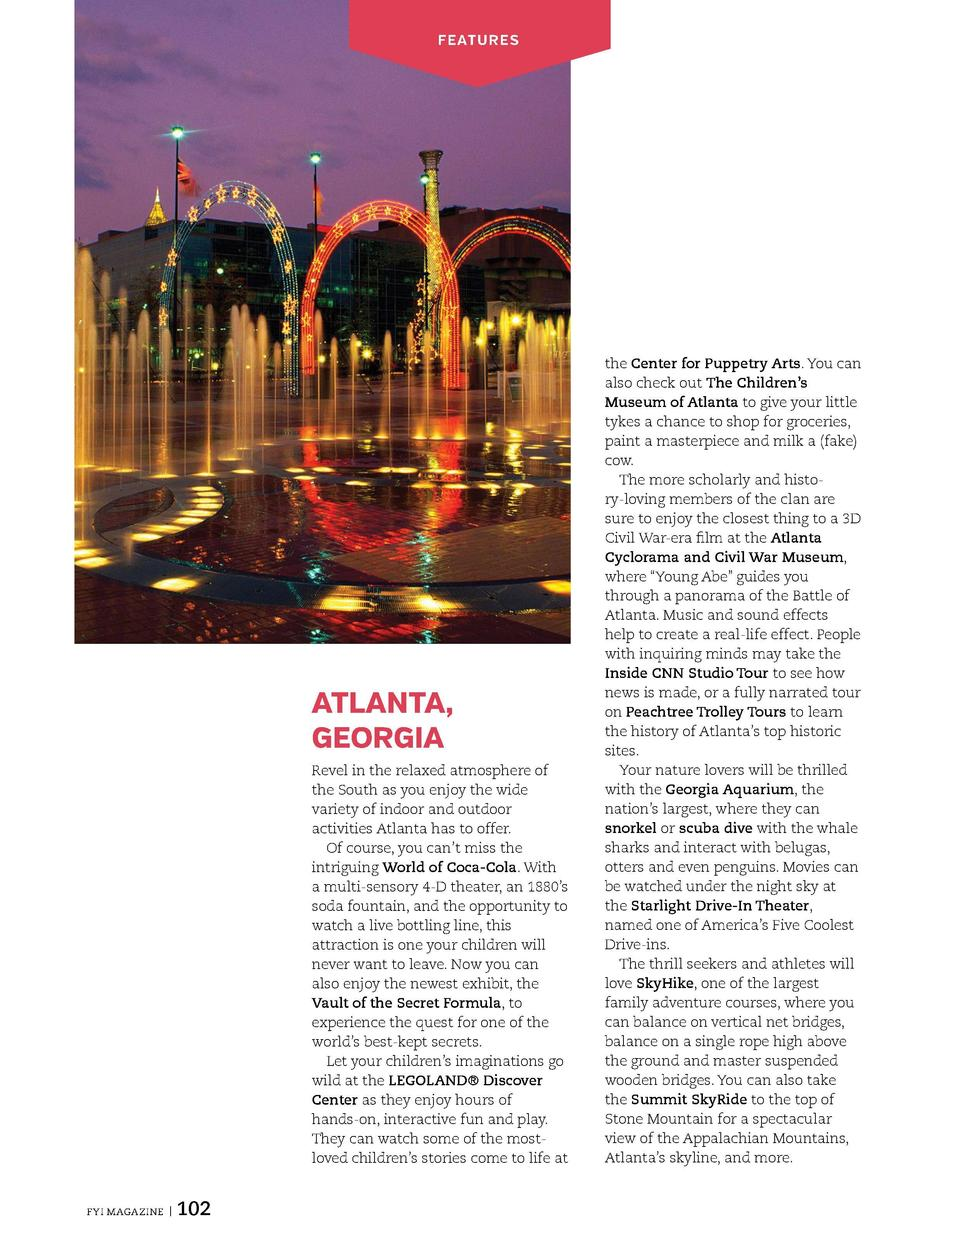 FEATURES  FEATURES  CHATTANOOGA, TENNESSEE  ATLANTA, GEORGIA Revel in the relaxed atmosphere of the South as you enjoy the...